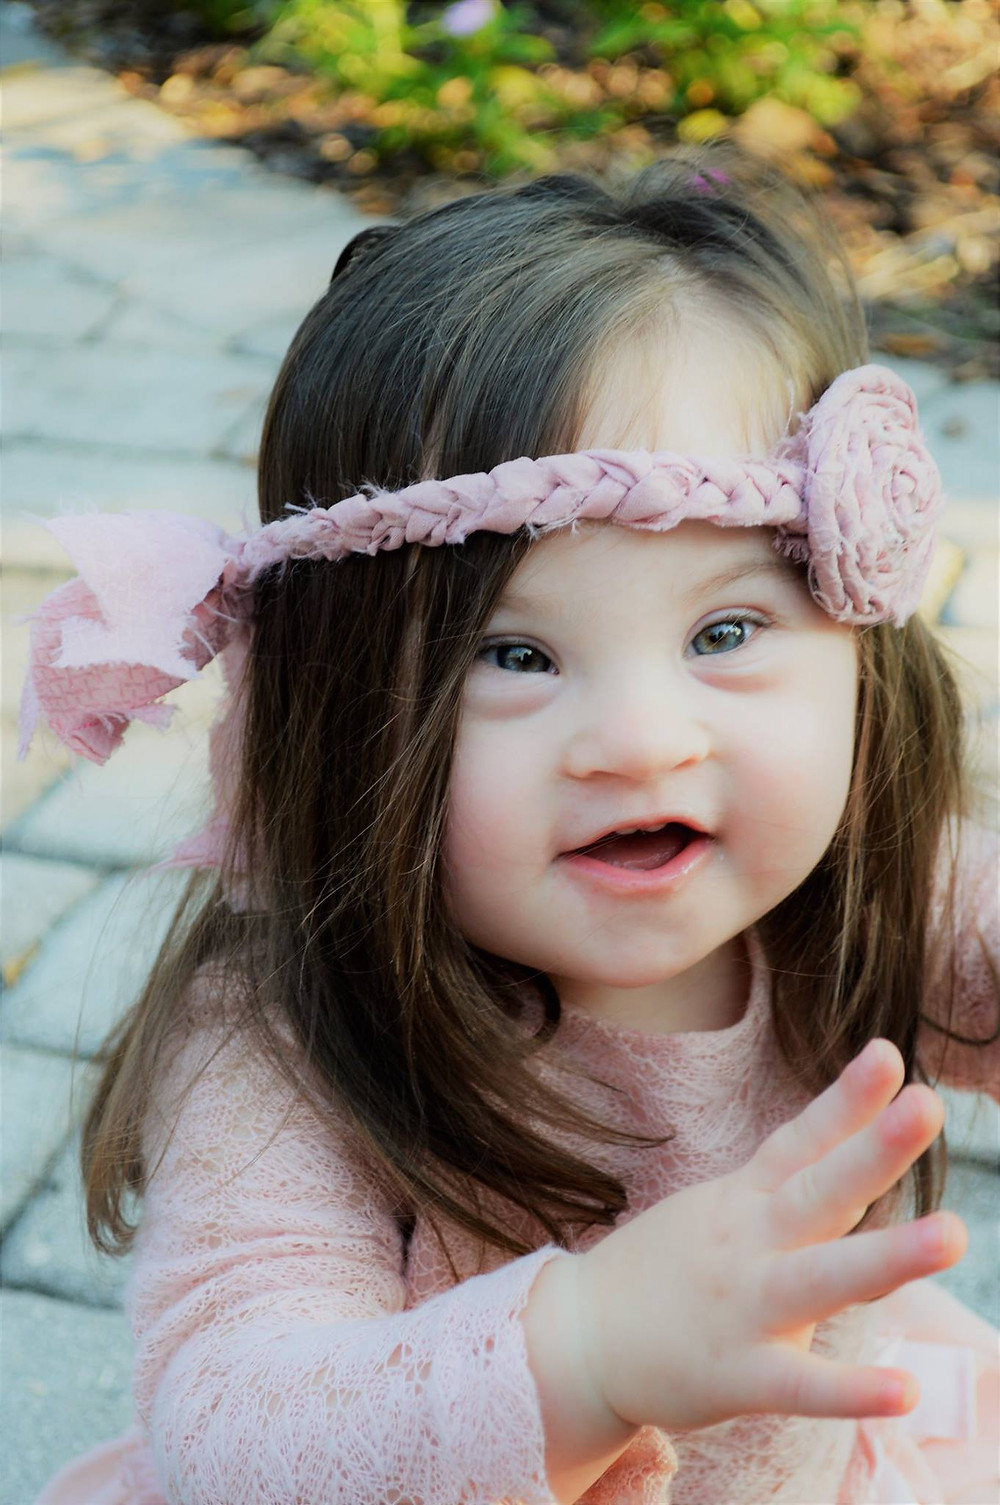 down syndrome girl toddler beautiful doctor diagnosis